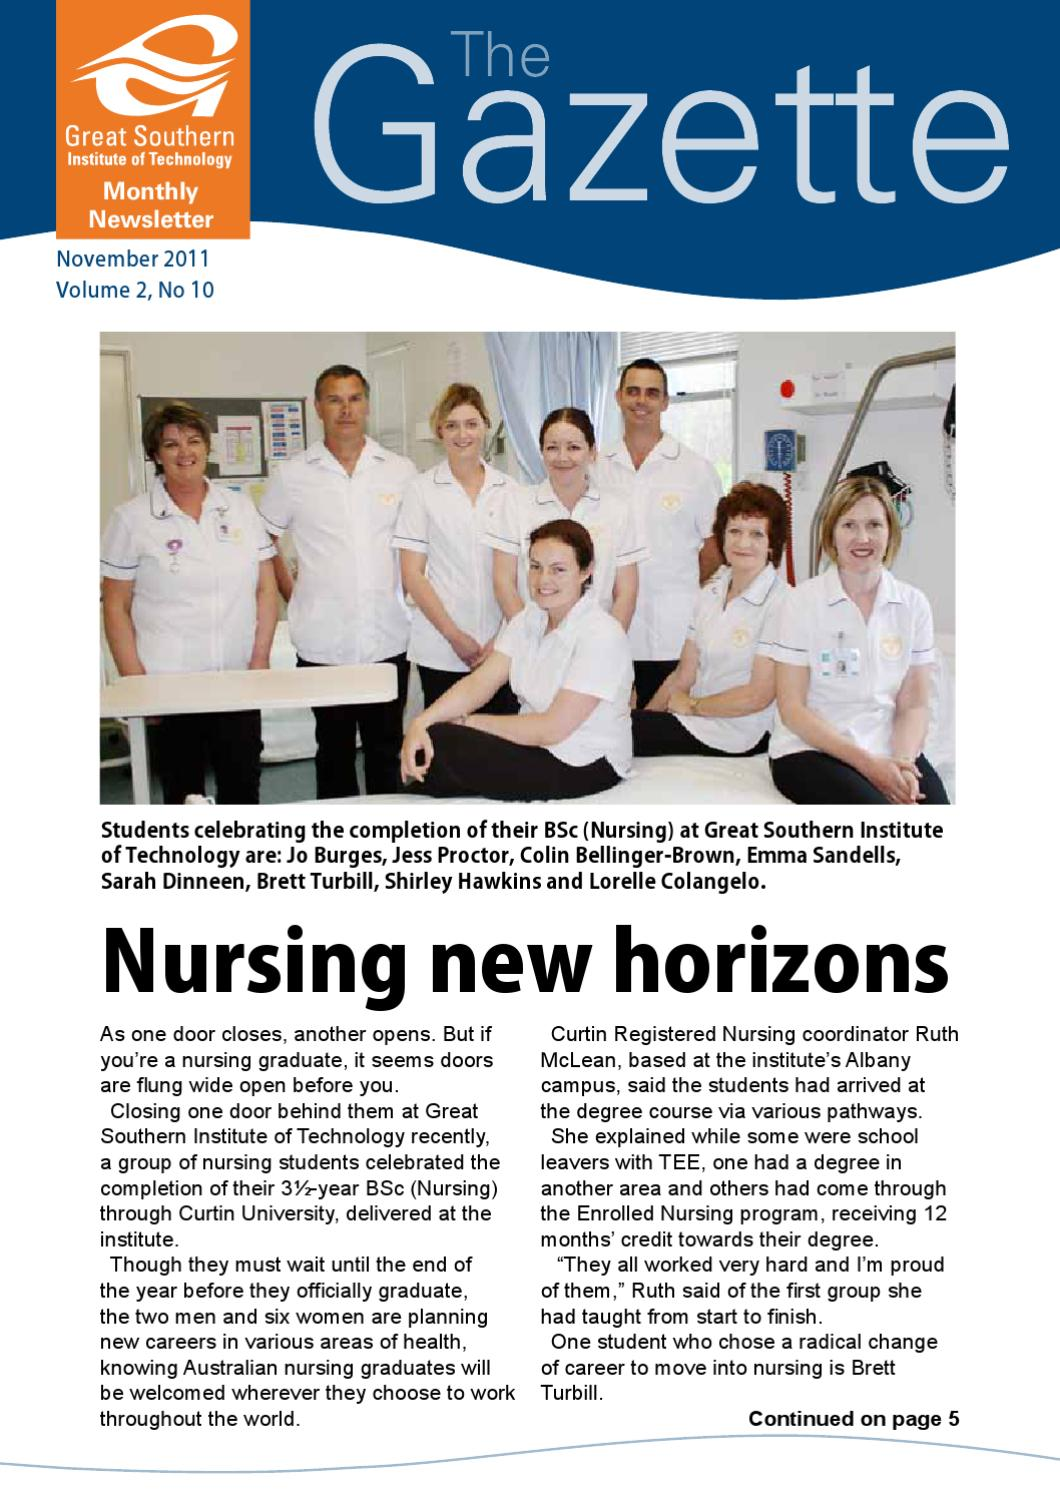 Paramedic practice today above and beyond volume 2 revised array the gazette november 2011 by great southern institute of technology rh issuu com fandeluxe Gallery